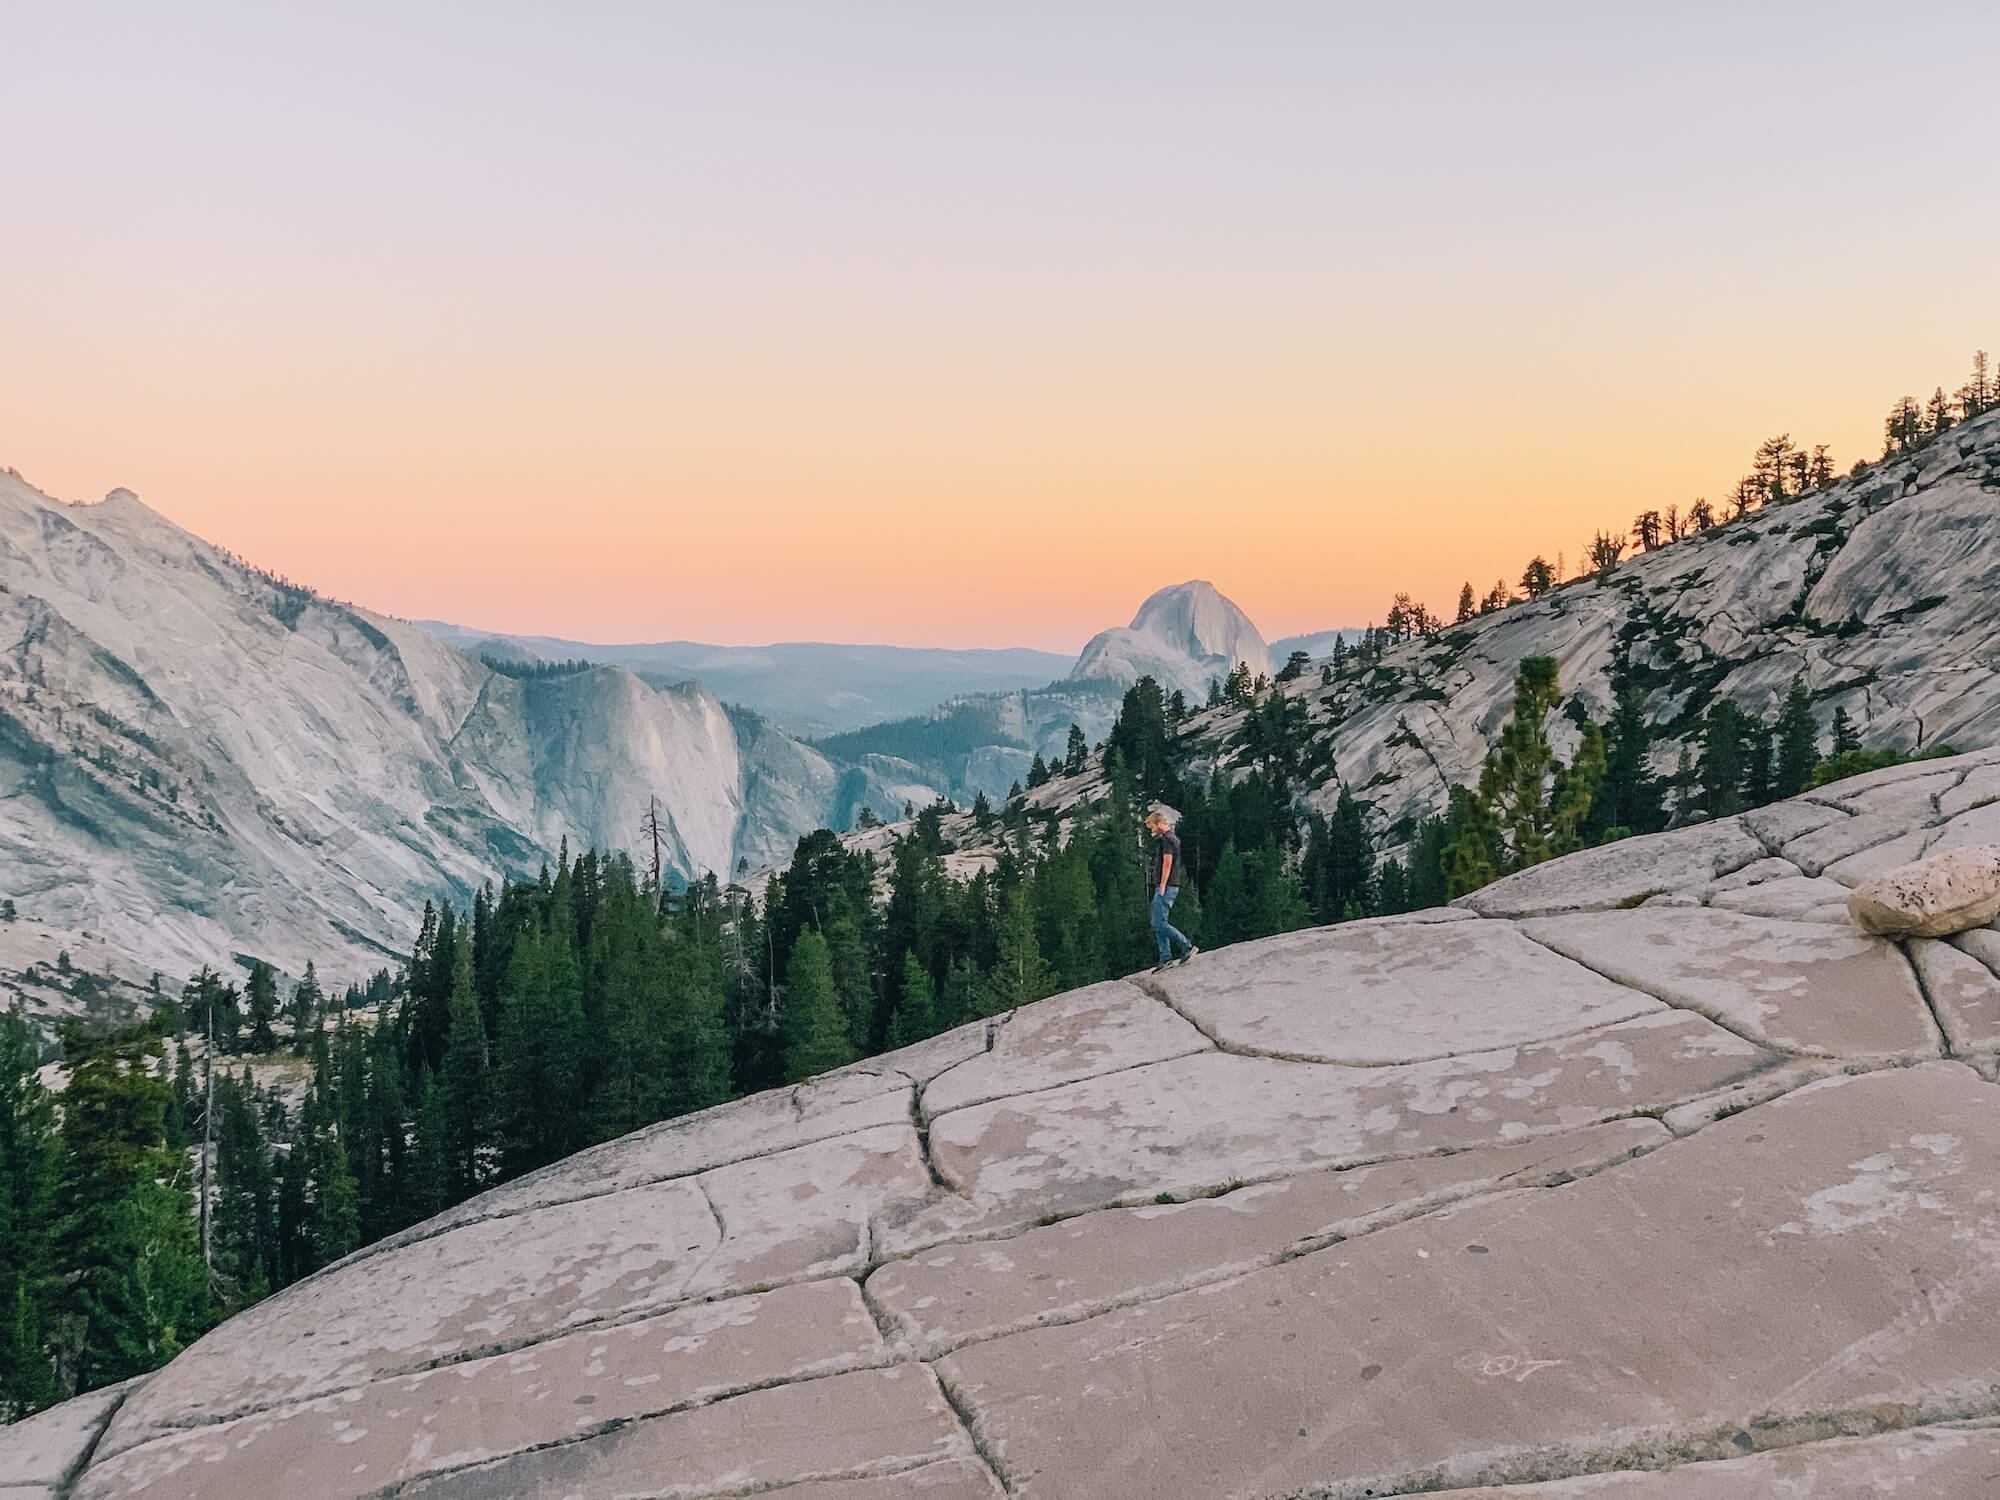 Yosemite National Park - Olmsted Point